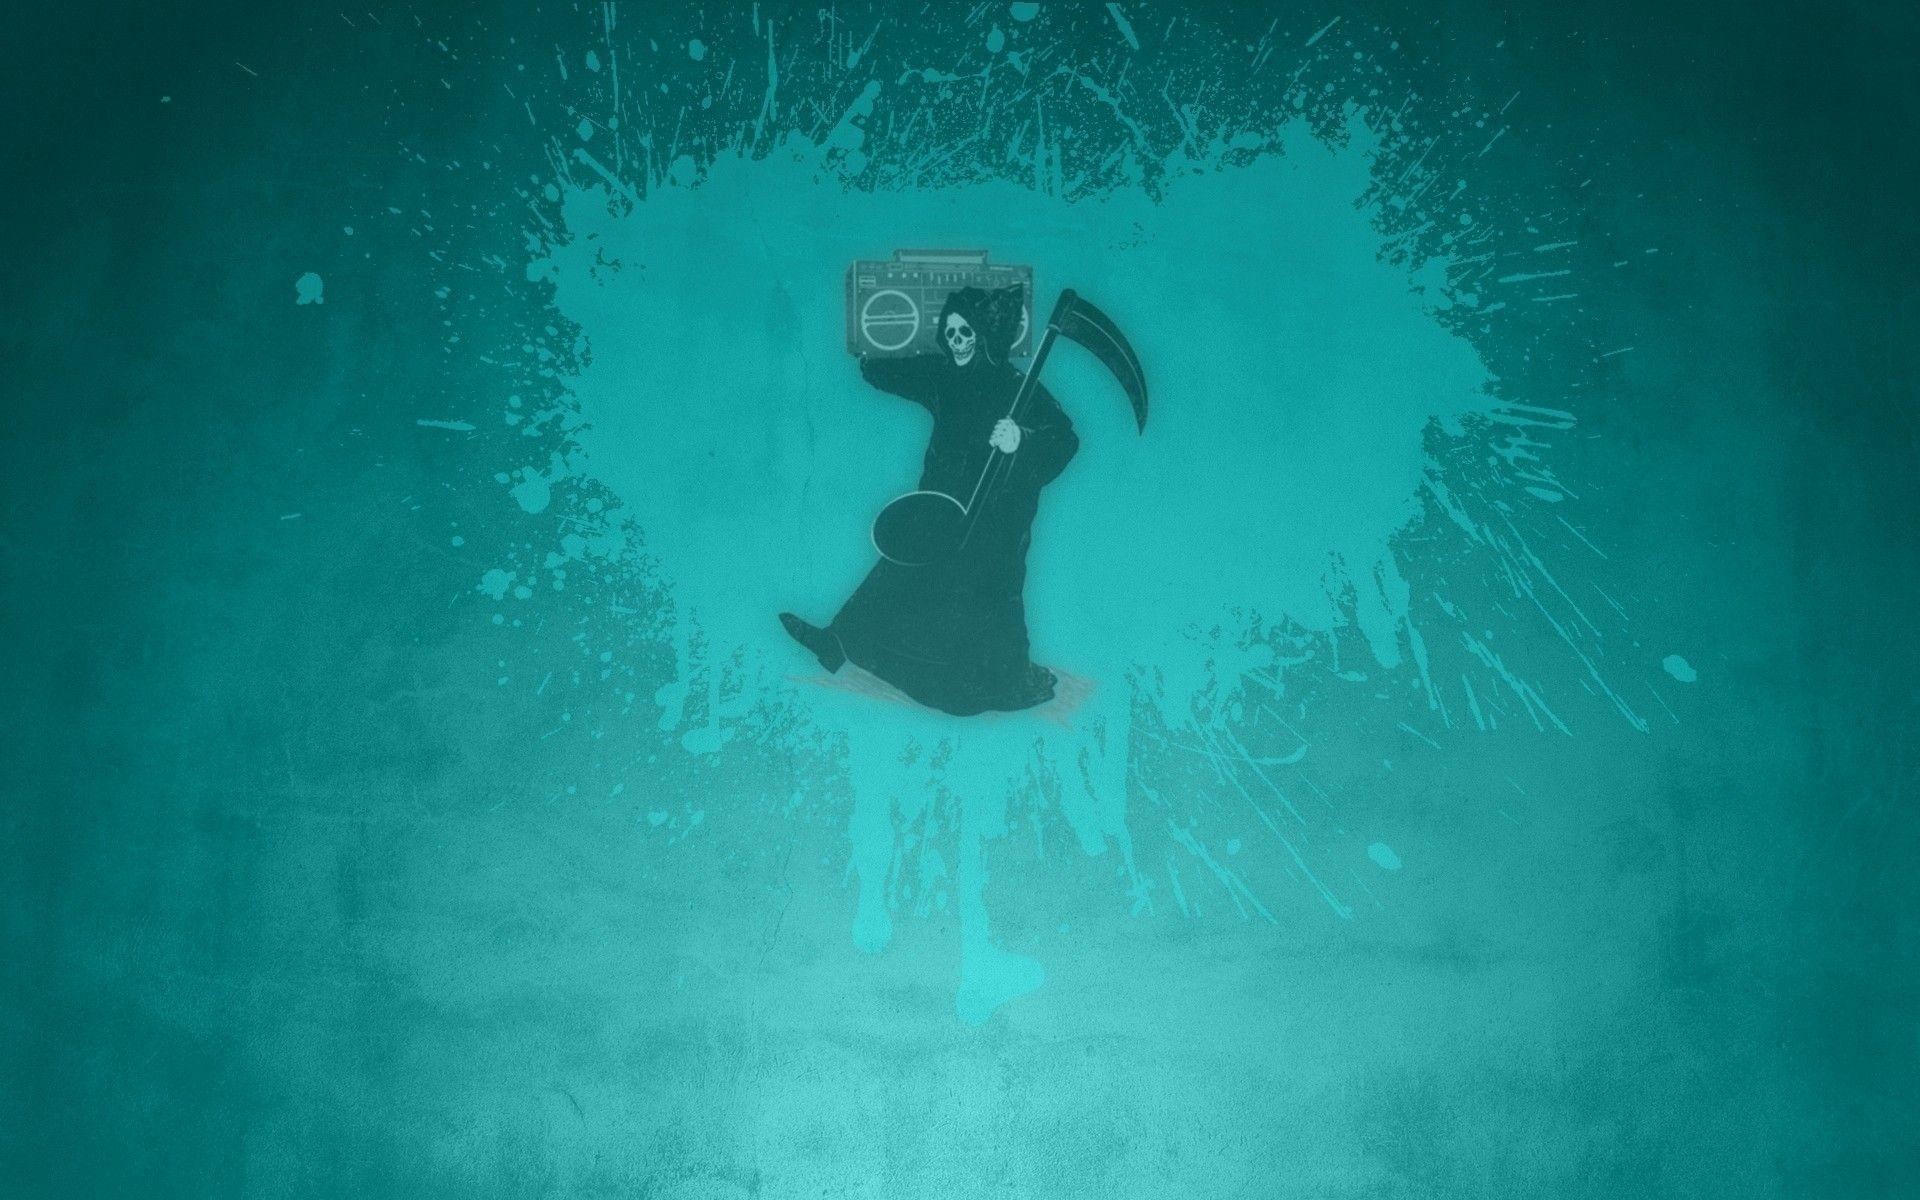 Death with a tape recorder, blue background wallpapers and images ...